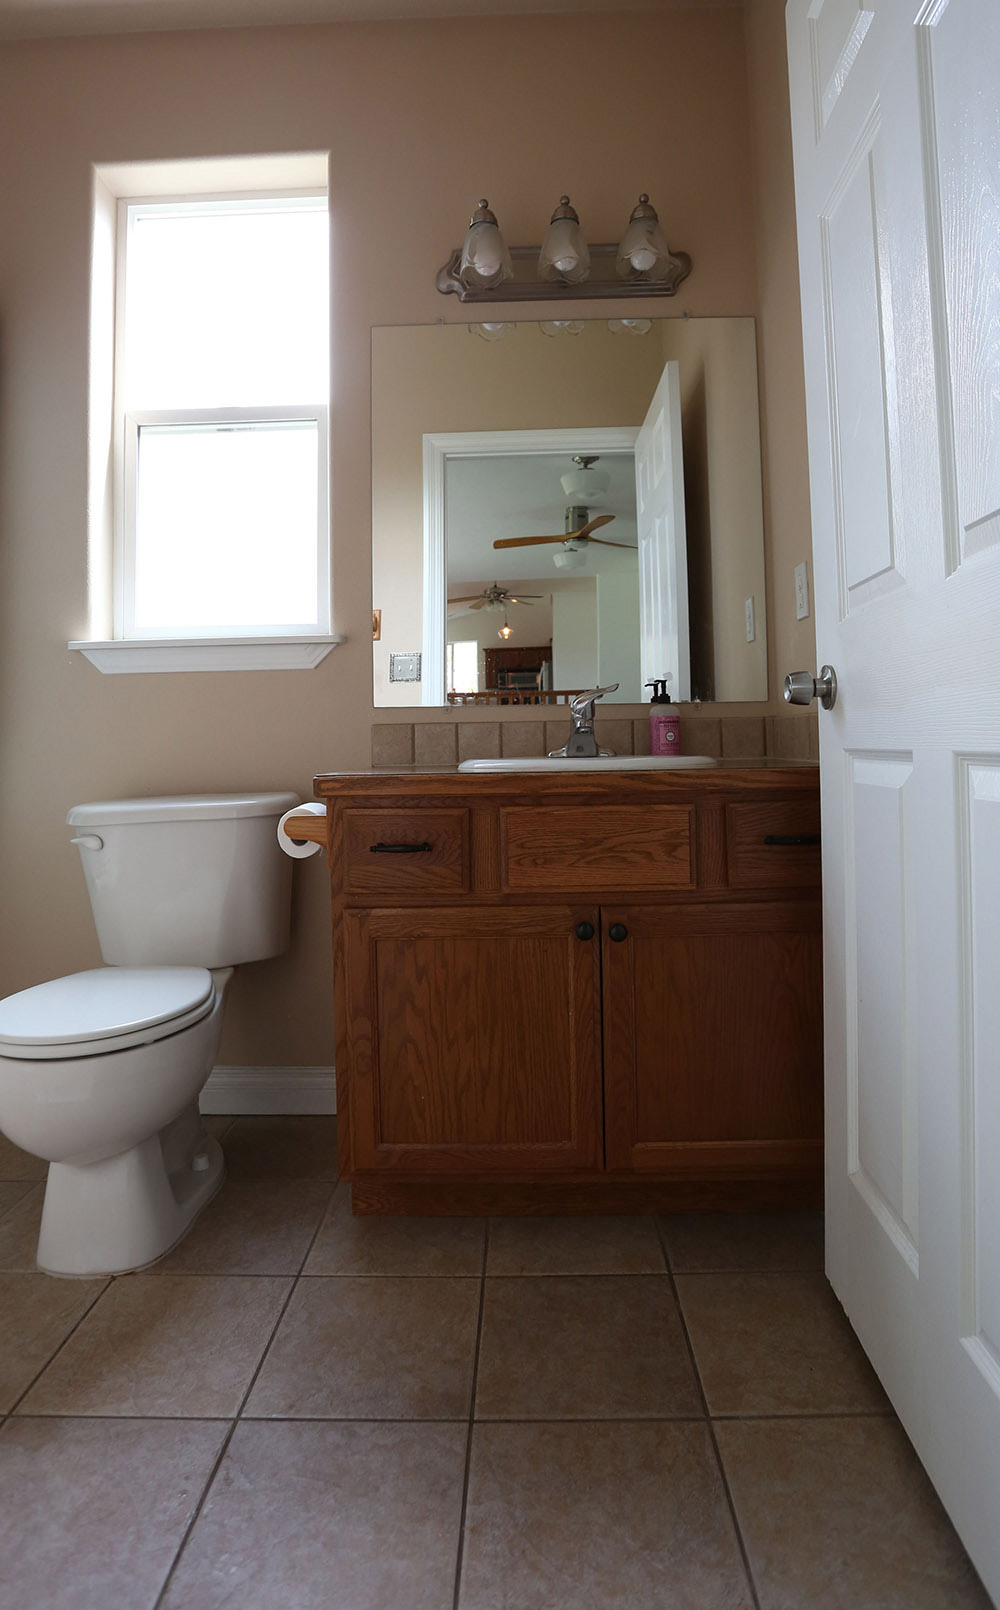 An outdated bathroom with an old wooden vanity and beige tile floors.